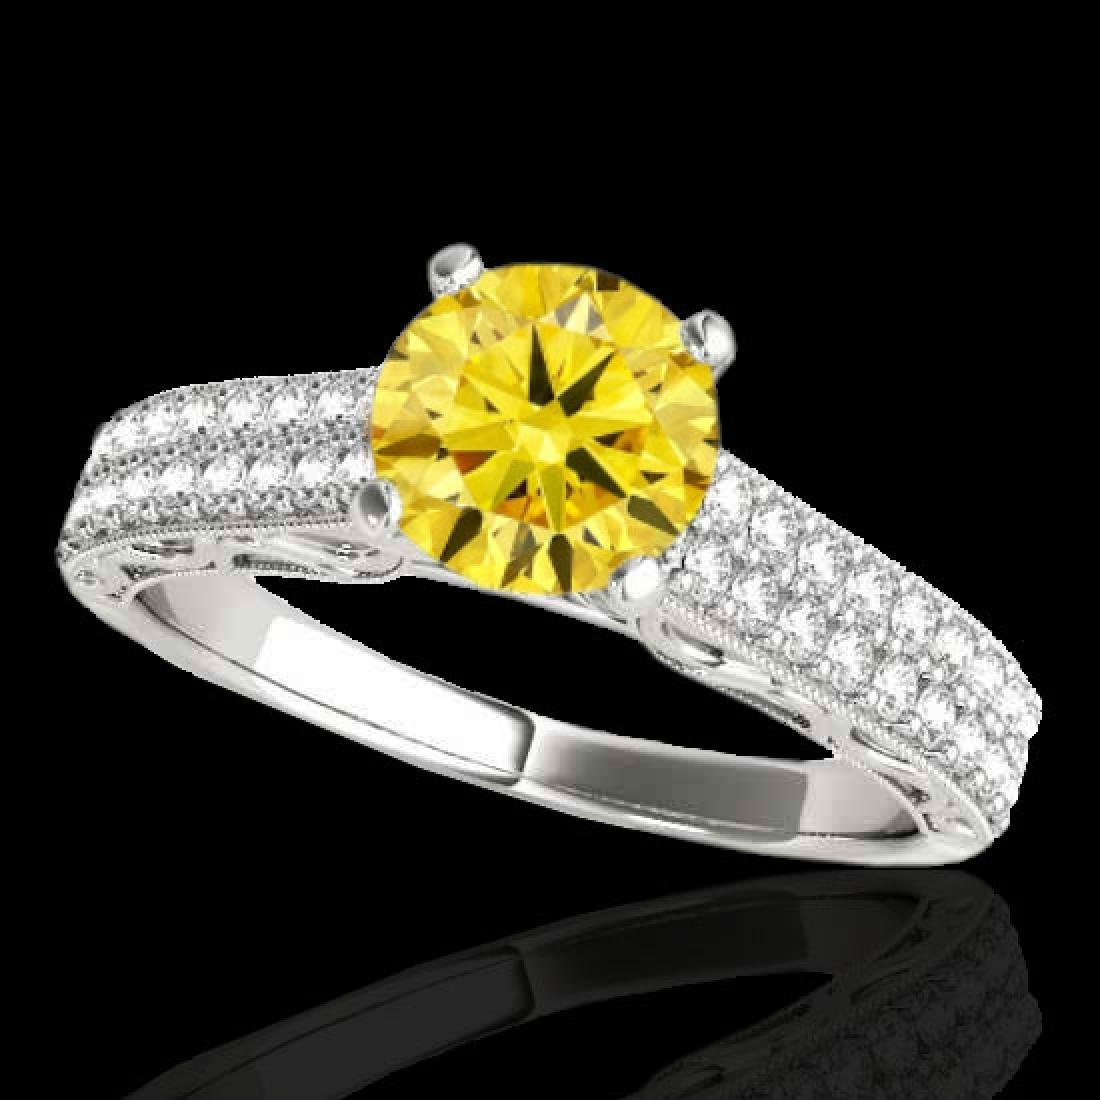 1.41 CTW Certified Si Intense Yellow Diamond Solitaire